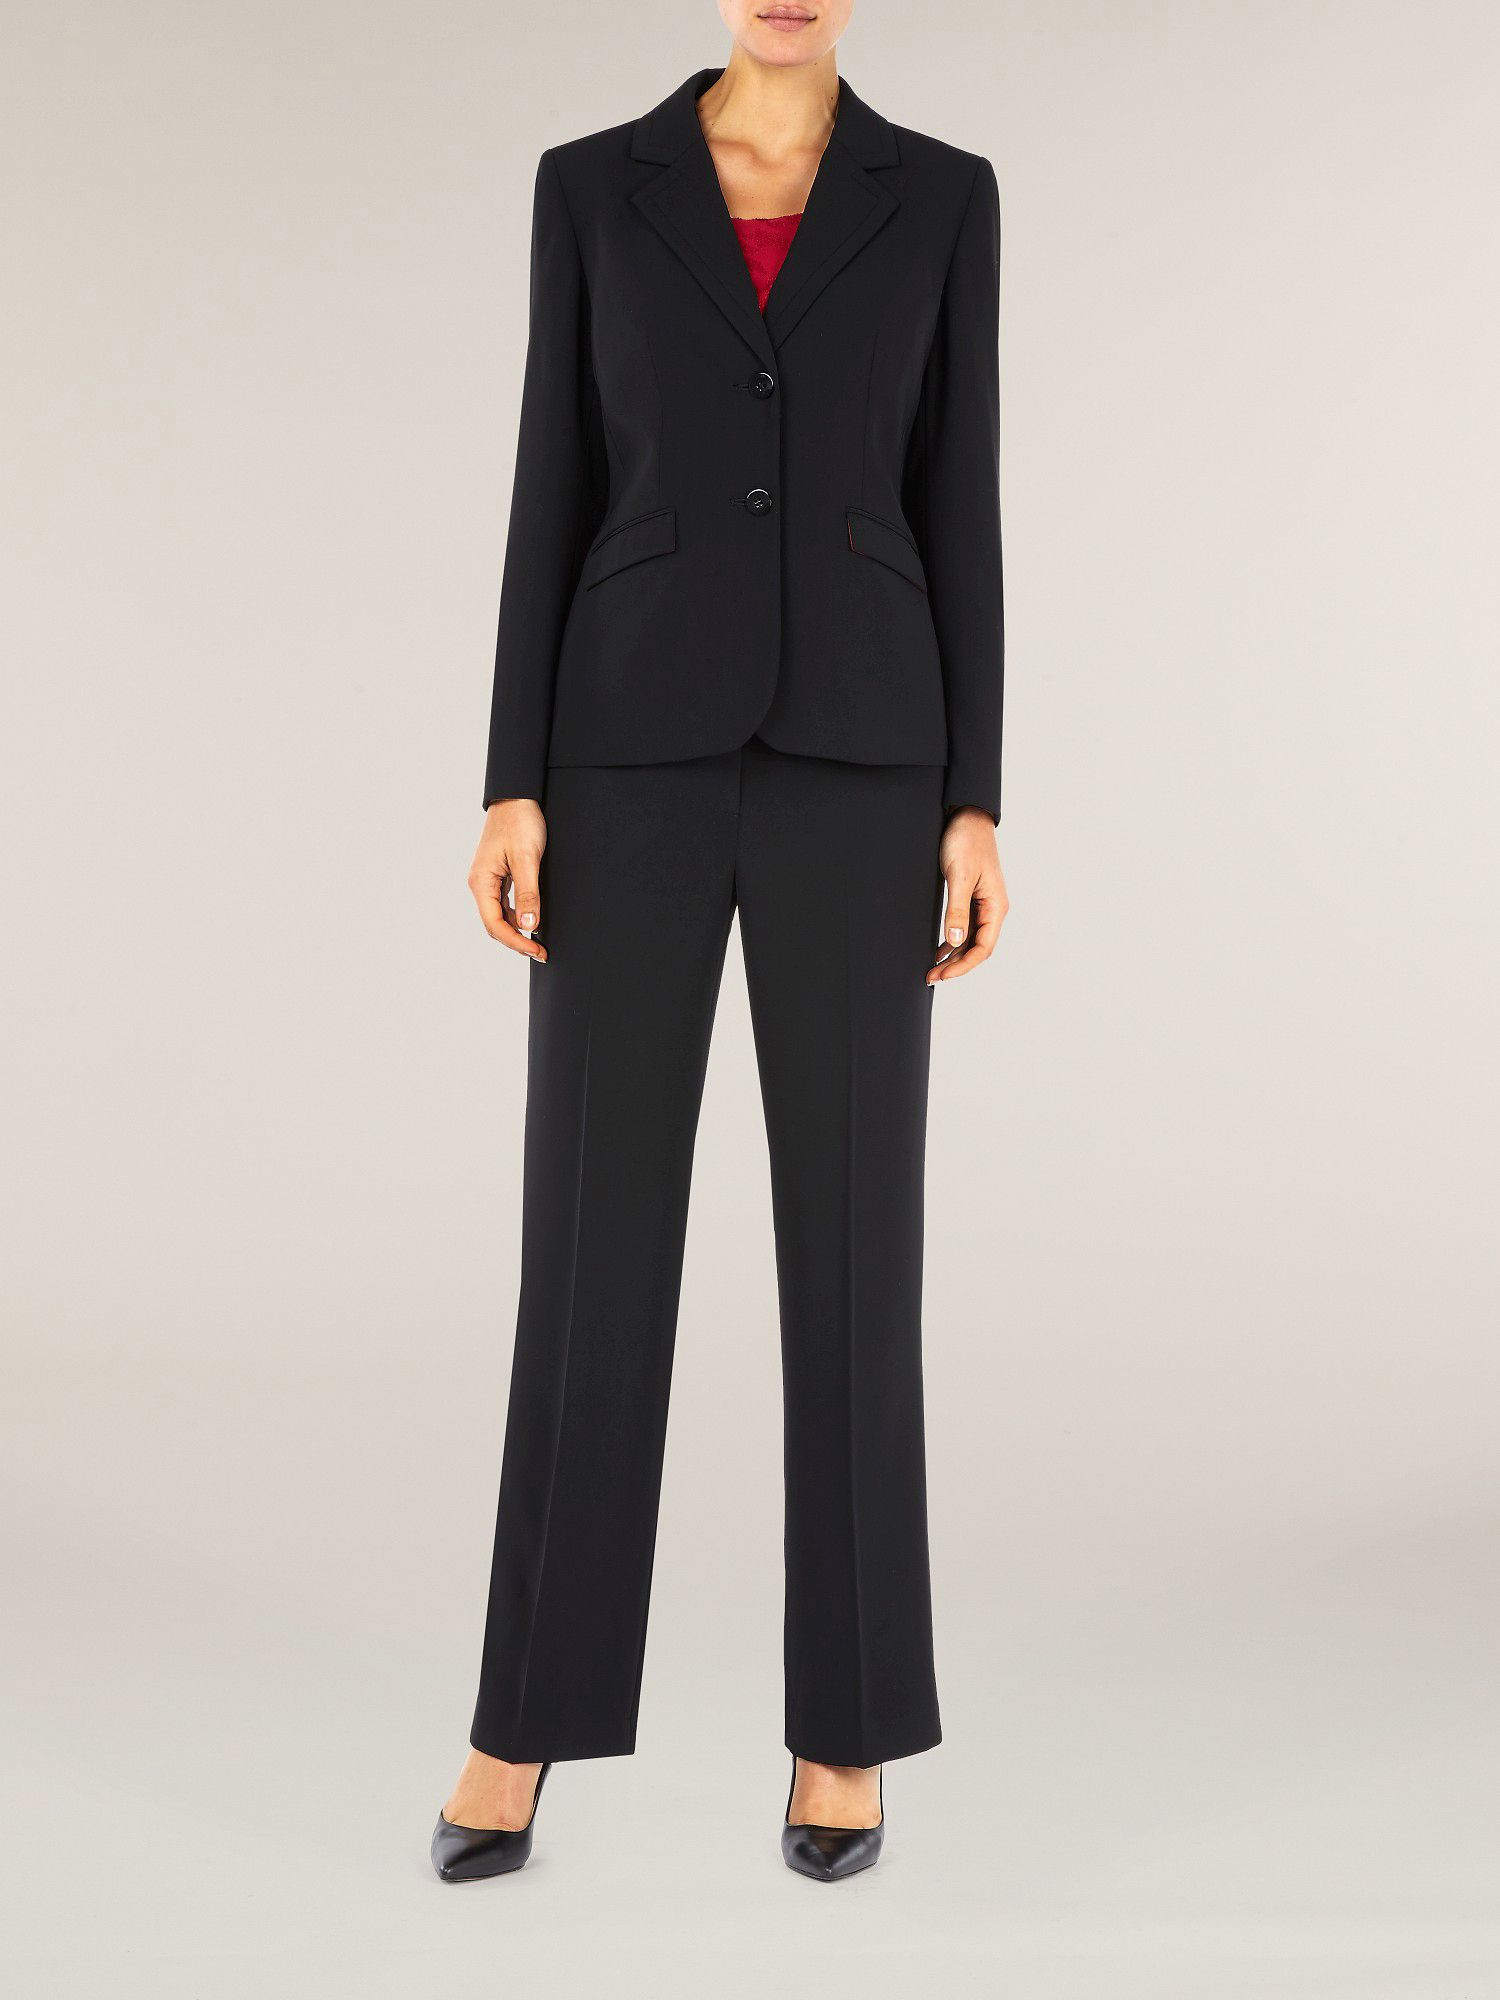 Tailored black suit jacket